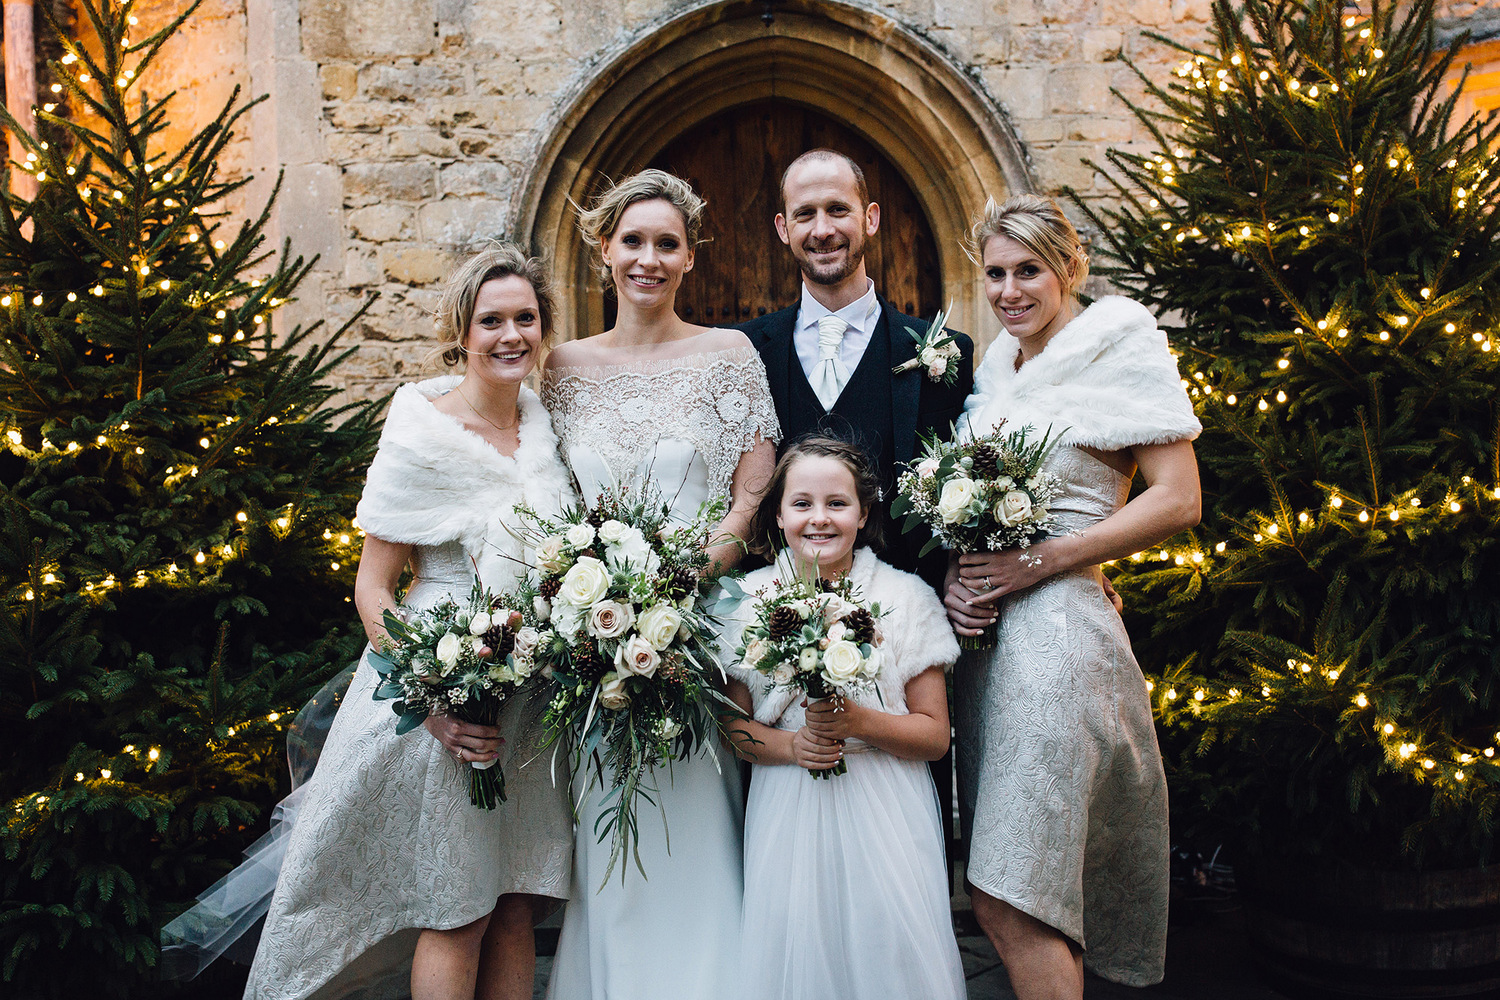 Romantic Winter Wedding at Notley Abbey, Bucks